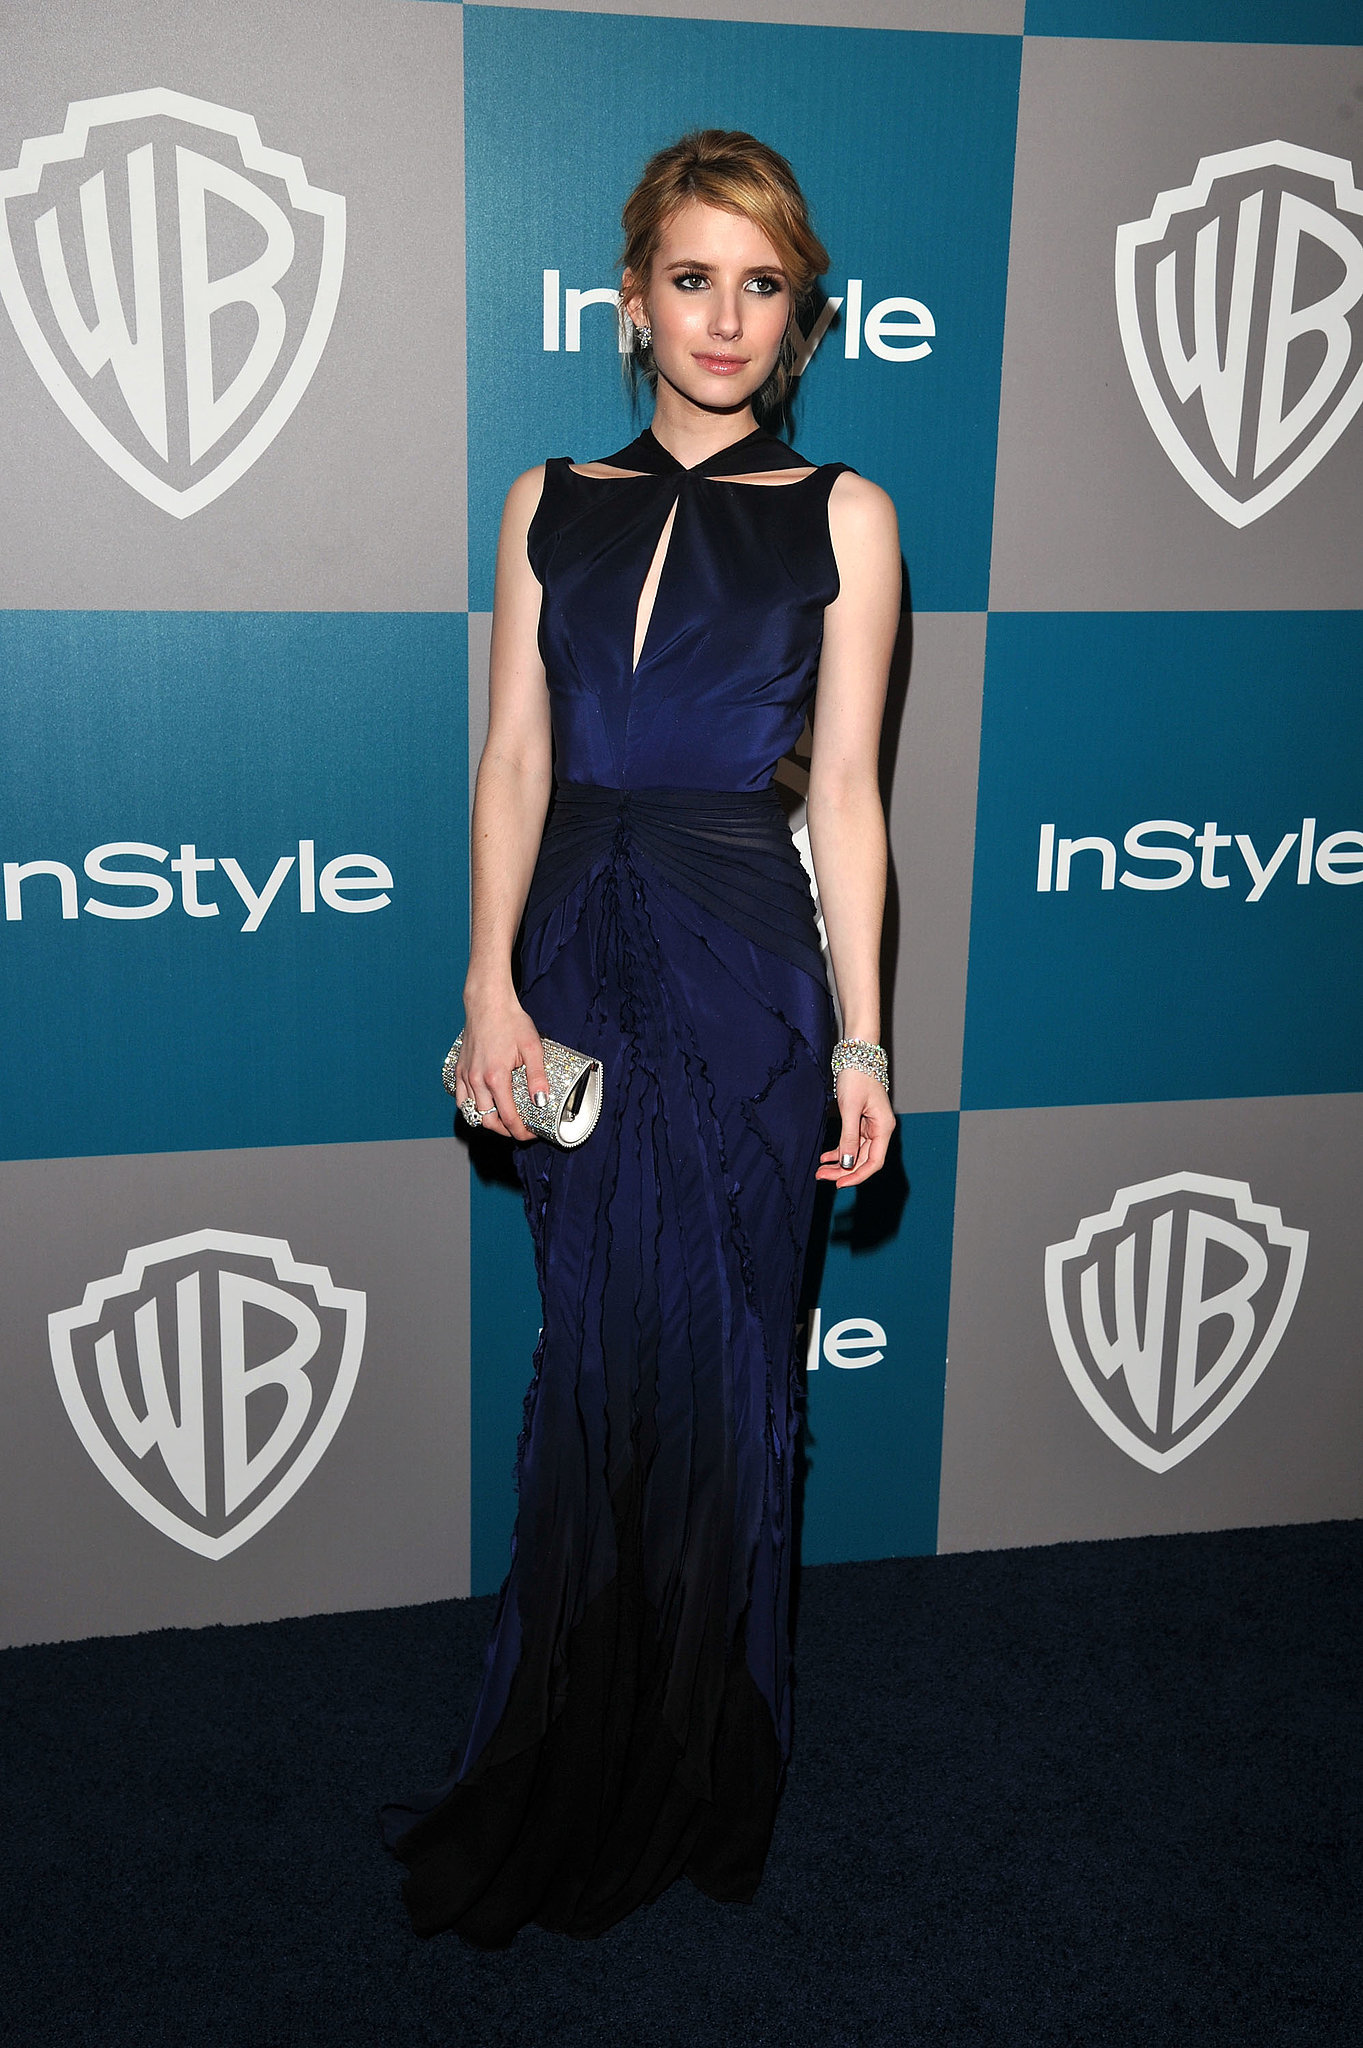 Emma stunned in a cutout Zac Posen gown for the Golden Globes InStyle afterparty in January 2012.